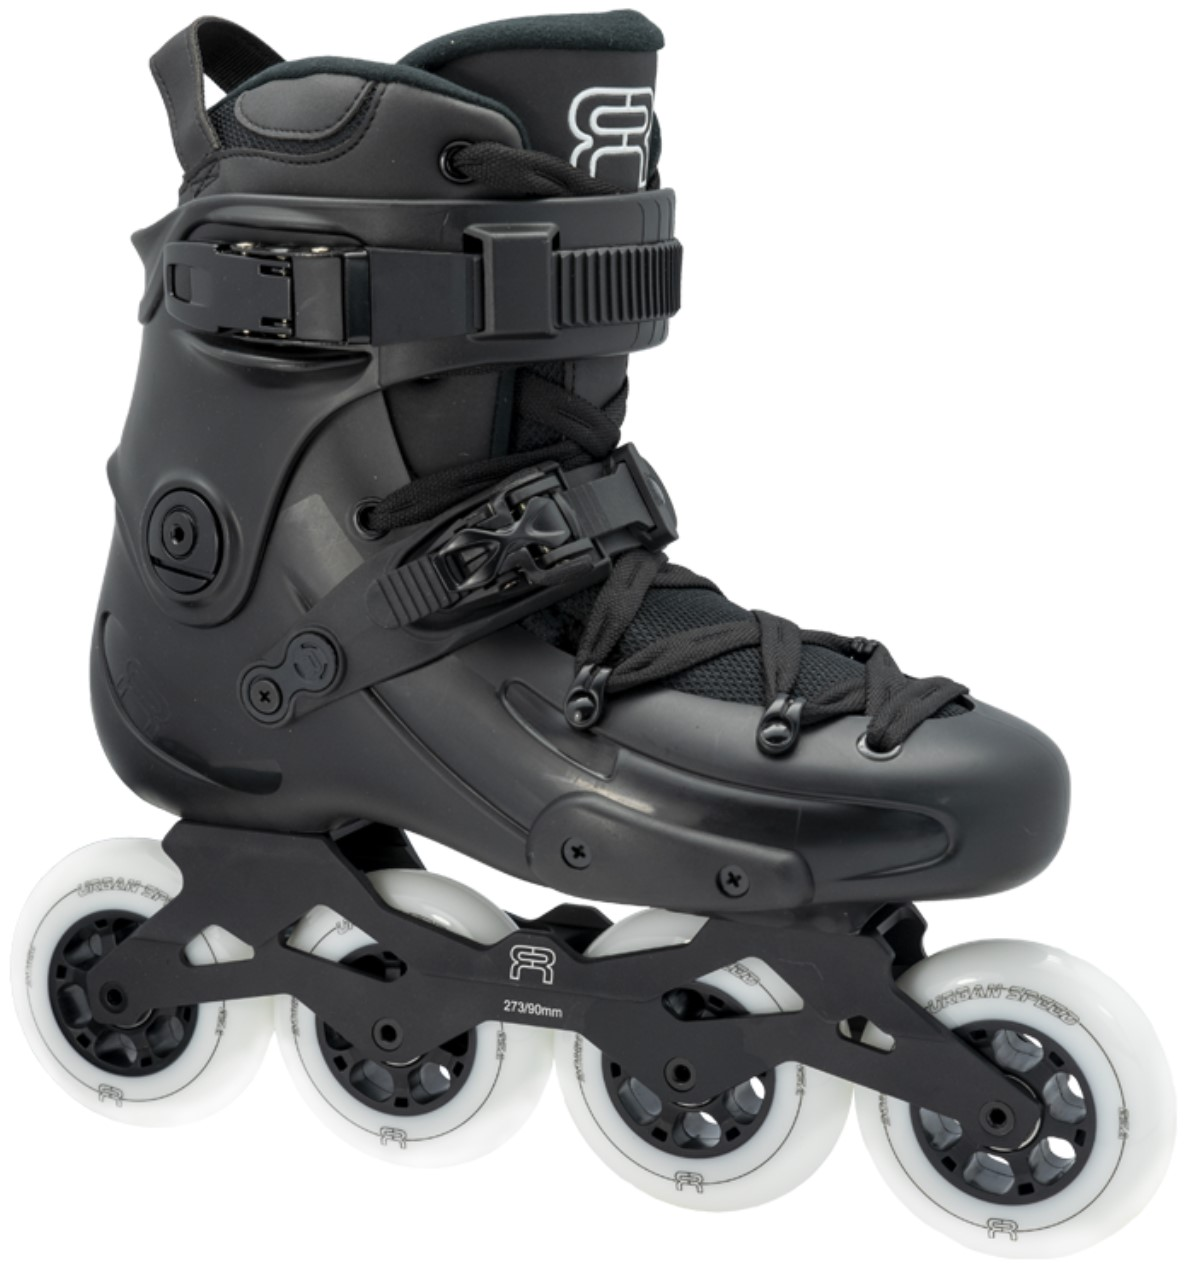 FR1 90 Black, the FR inline skate that is suitable for fitness because of its setup with four wheels of 90 mm